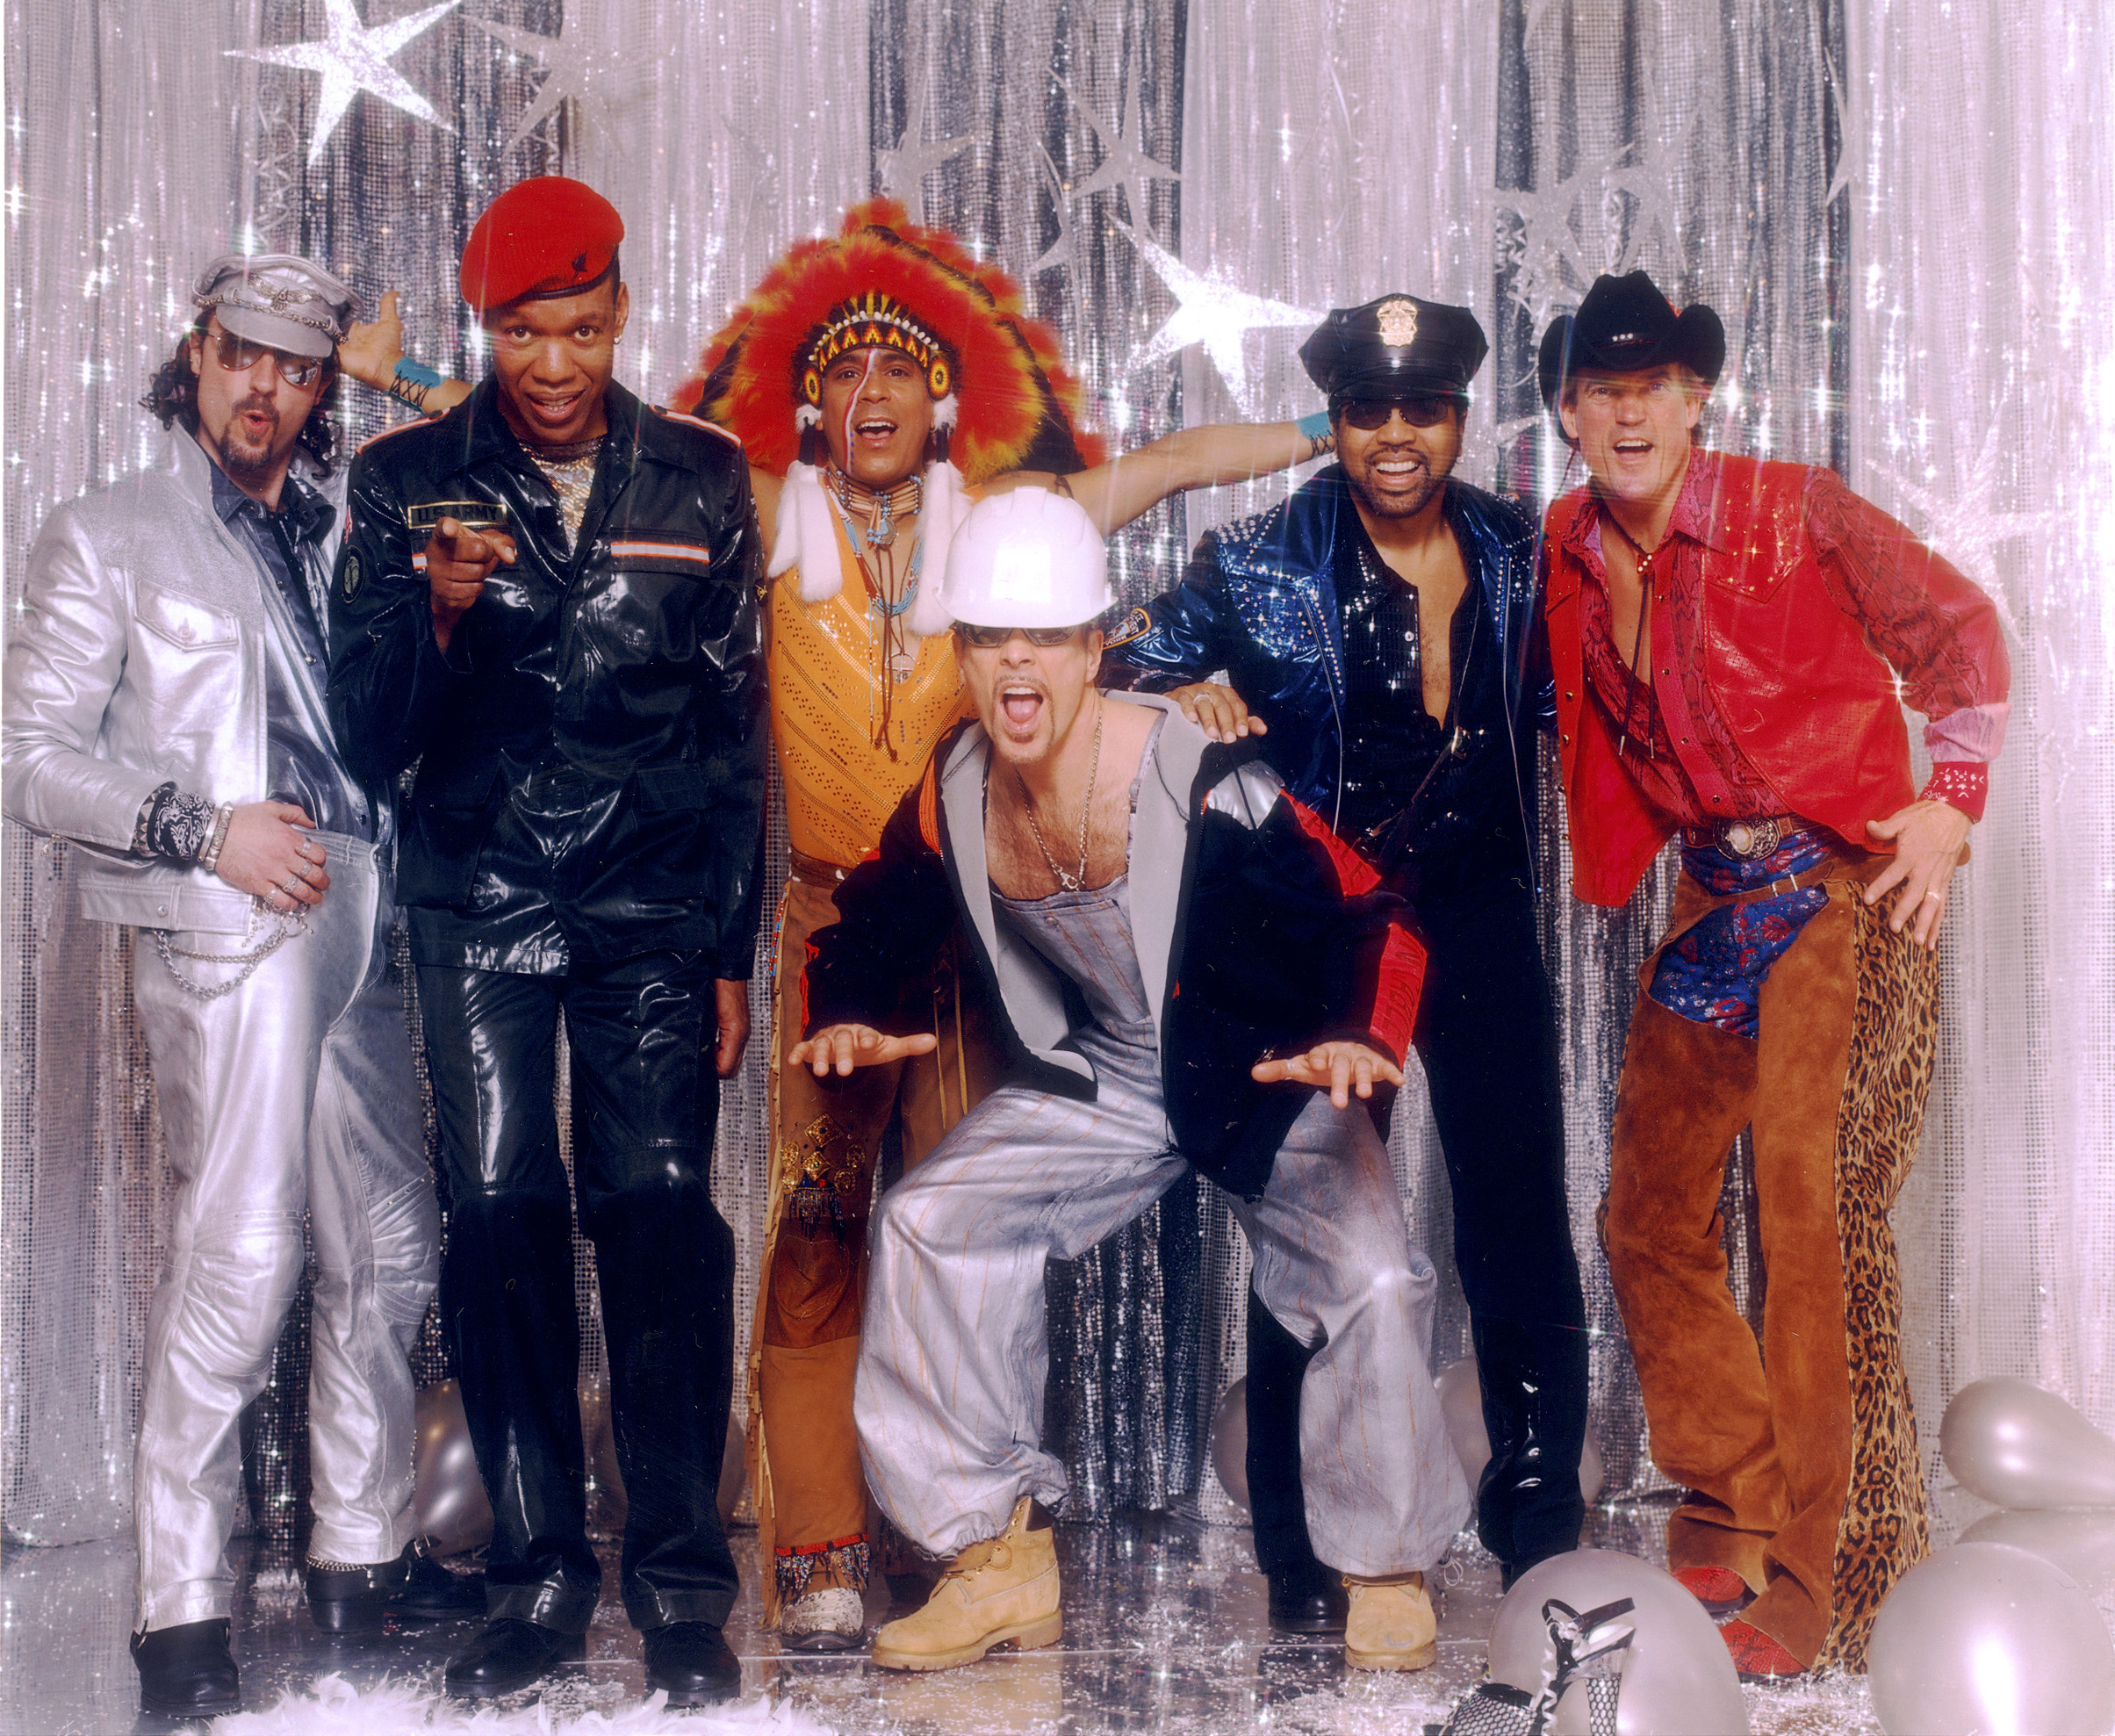 Village People - Image 1